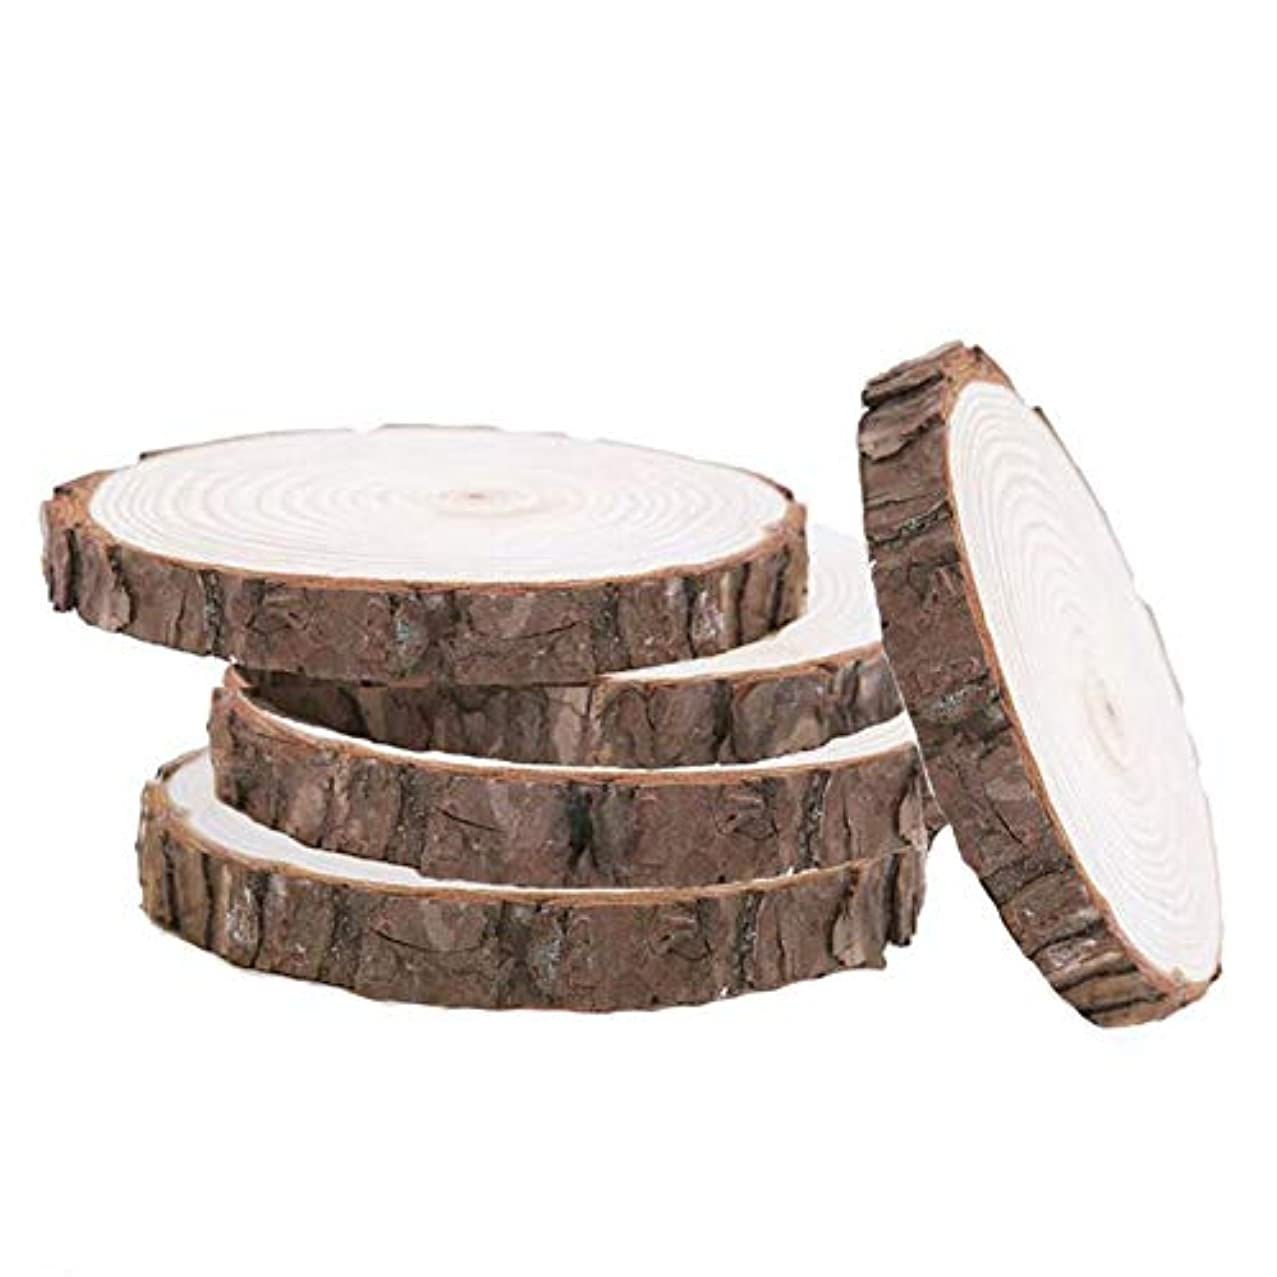 5 Pack Natural Wood Slices Round Basswood Log Rustic Wooden Circles DIY Crafts Wedding Decorations Christmas Ornaments Table Chargers or Decoration